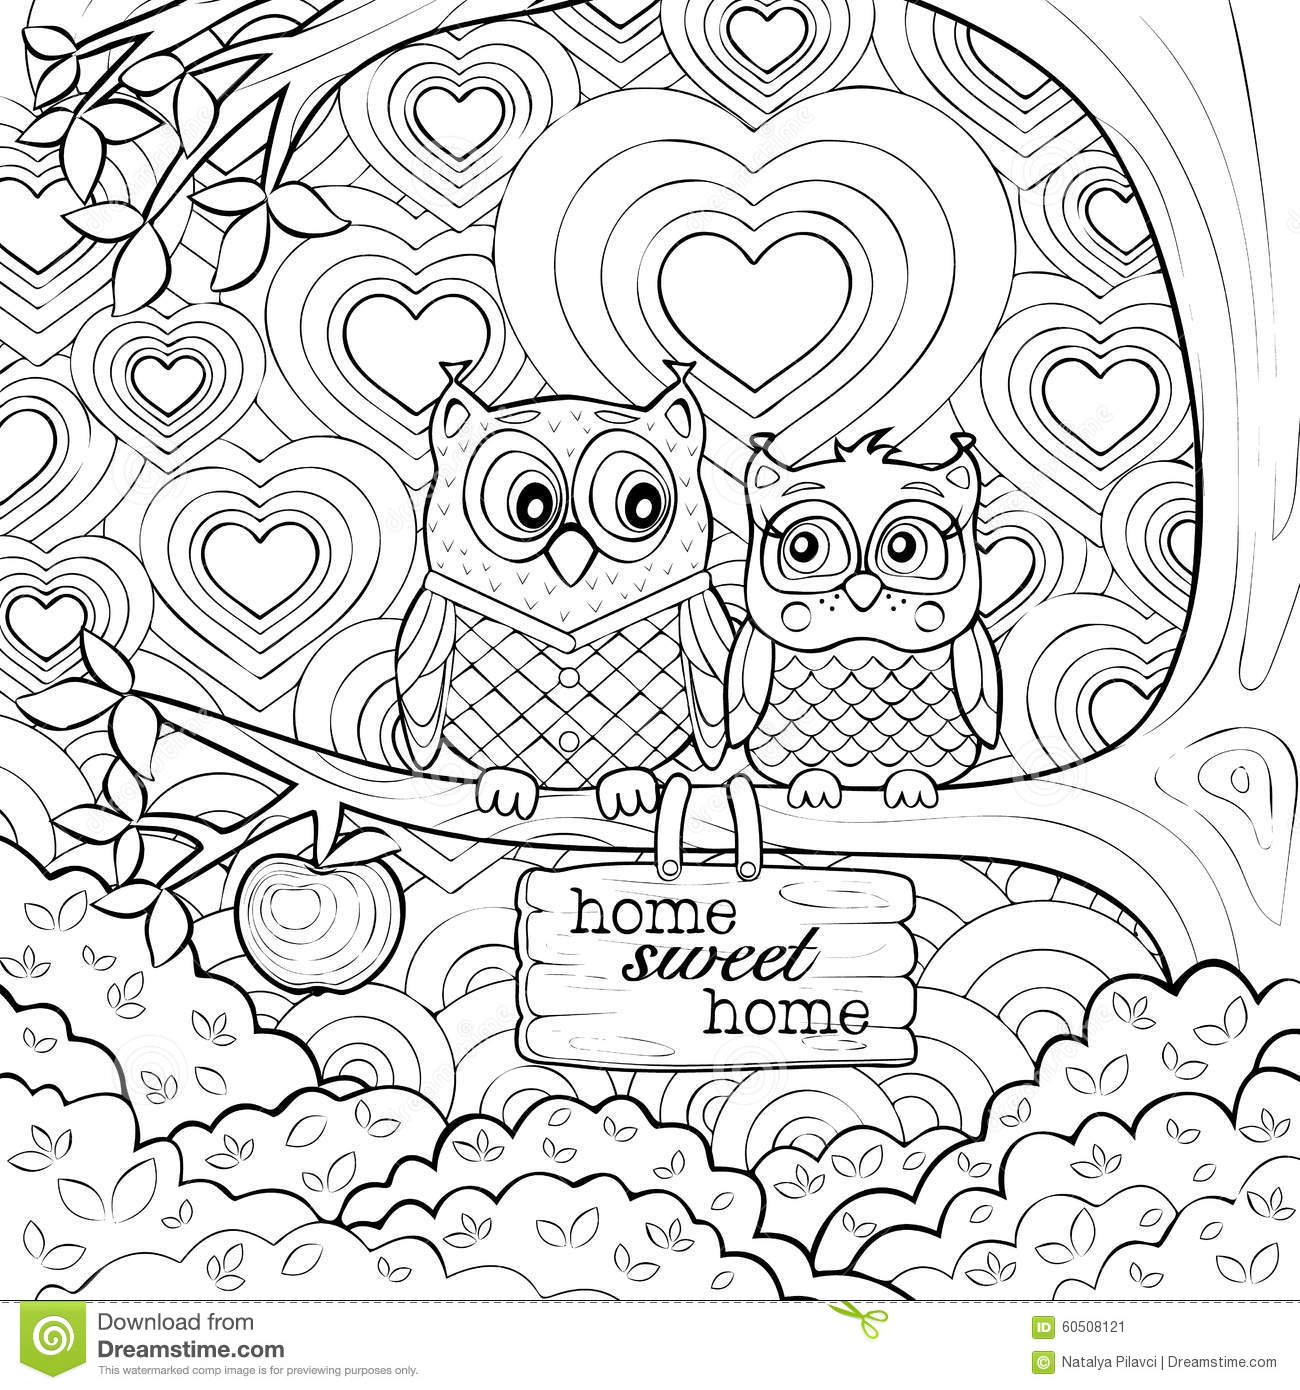 Gulliga Ugglor Art Therapy Coloring Page Vektor Therapy Coloring Pages 2